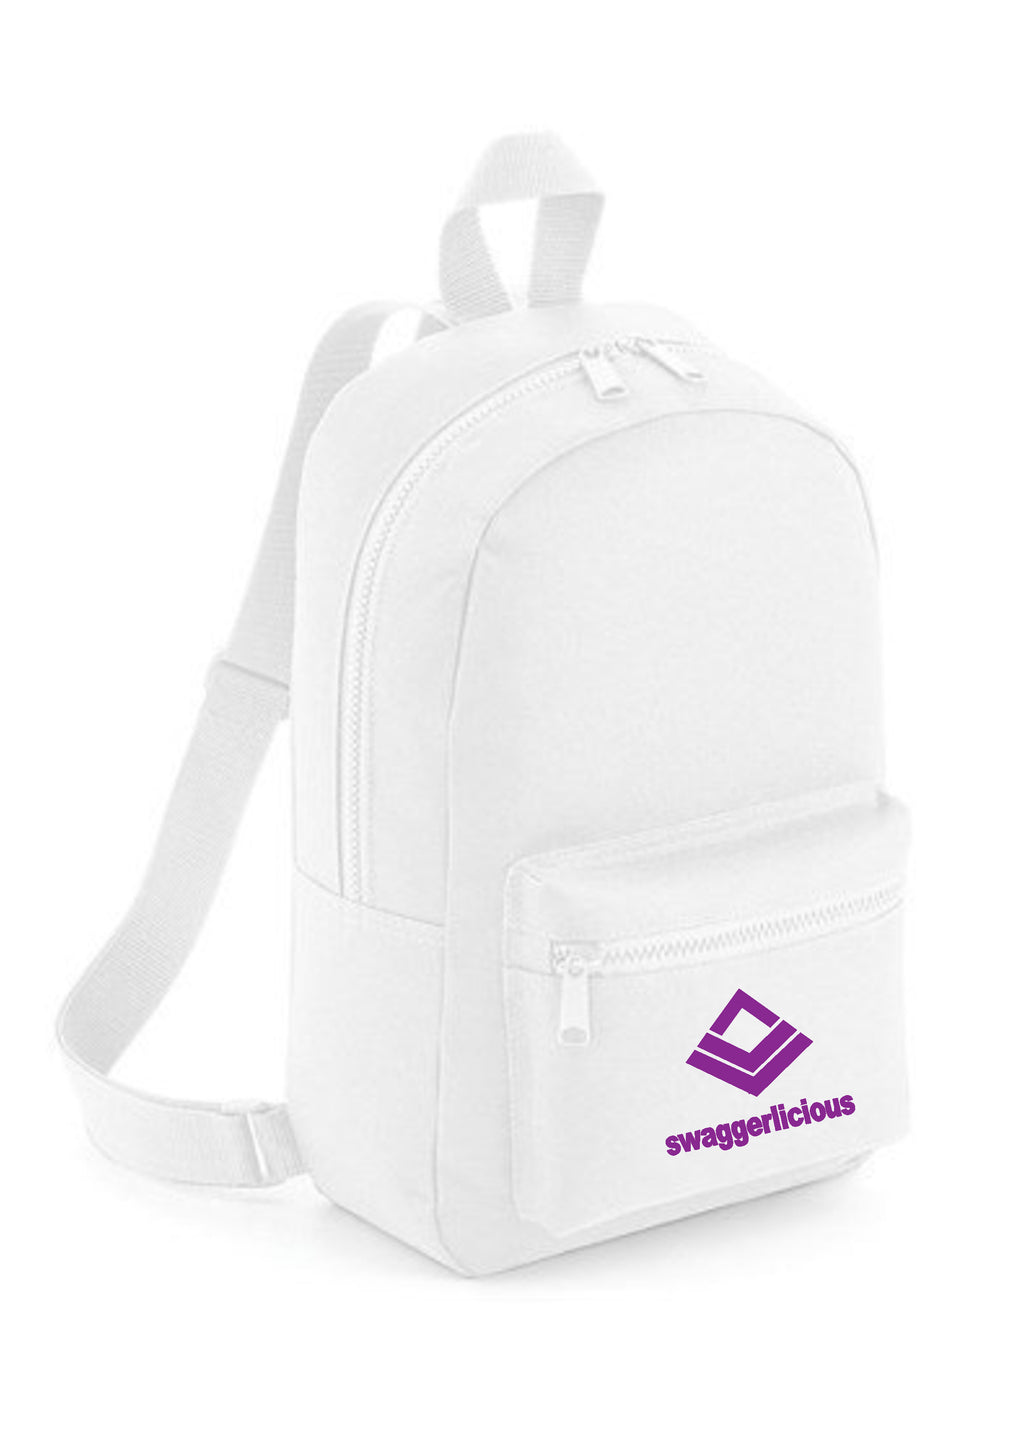 Swaggerlicious Classic White Mini Backpack with Purple Logo - swaggerlicious-clothing.com